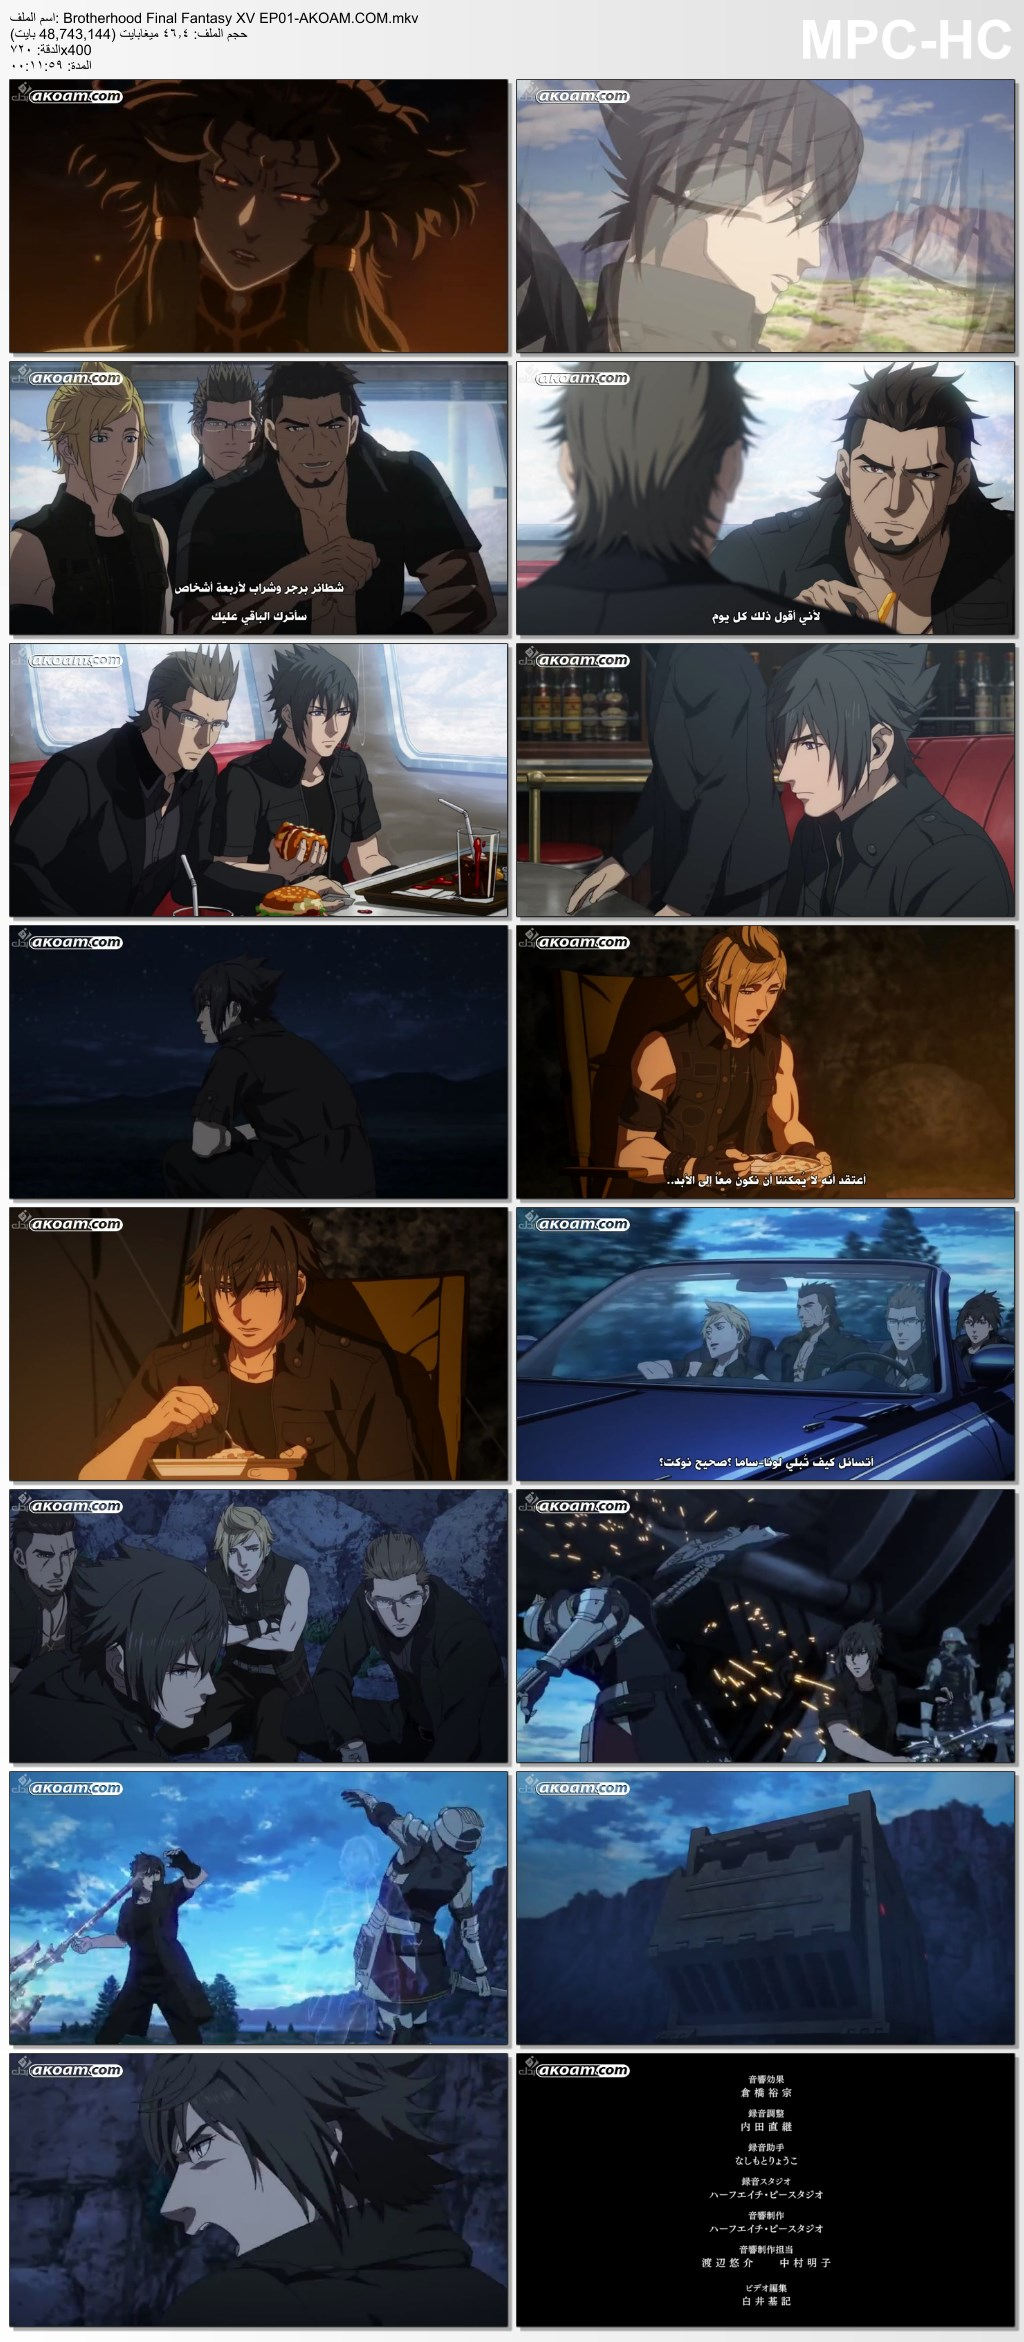 Brotherhood,Final,Fantasy,Brotherhood Final Fantasy XV,anime,مسلسل,انمى